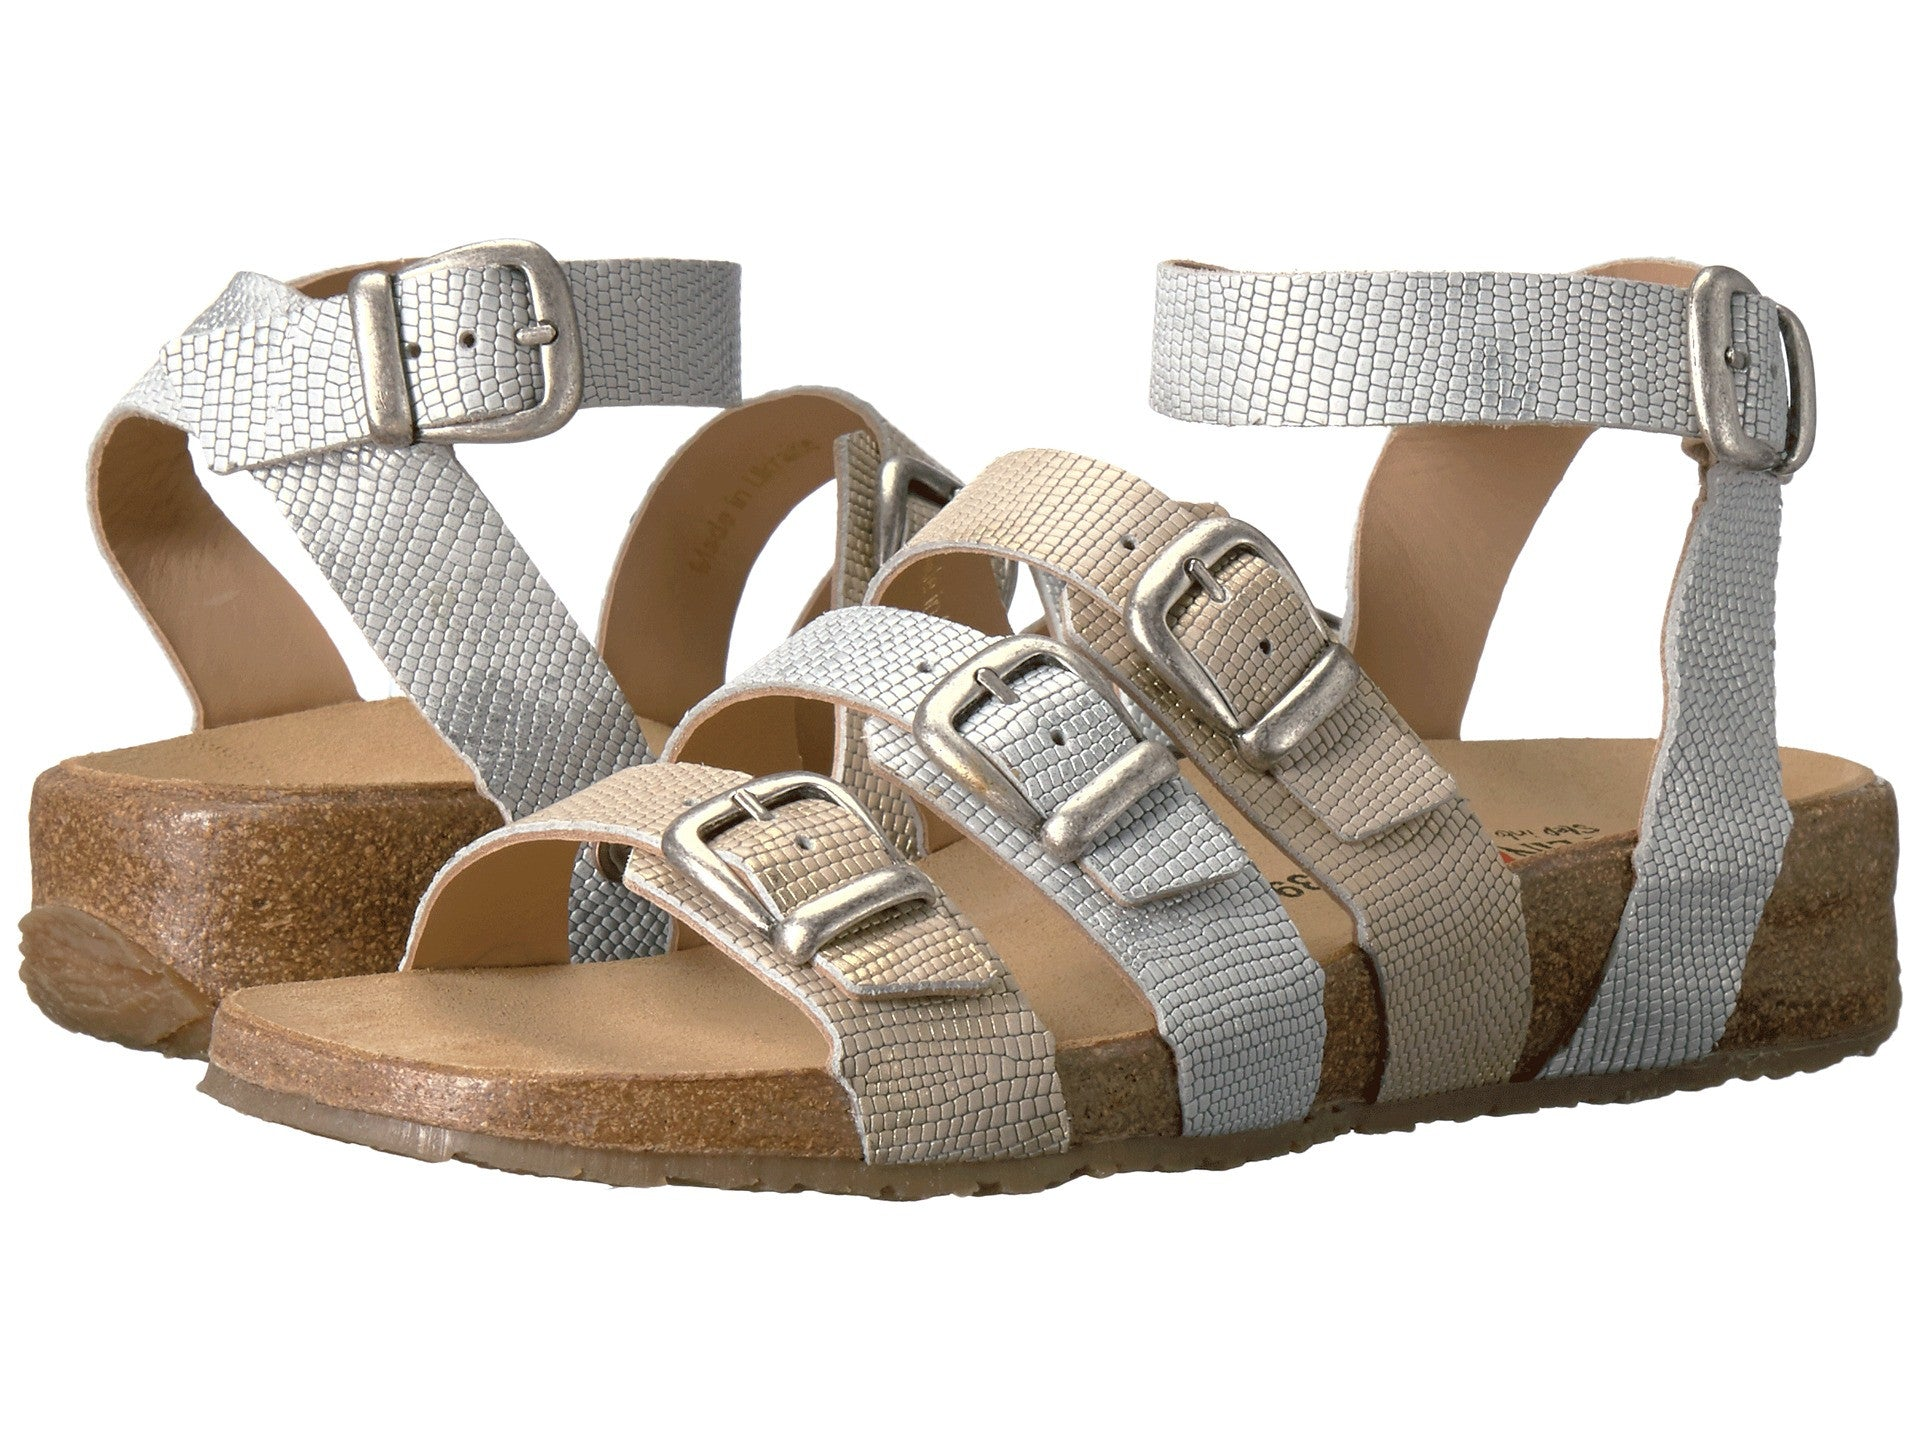 Haflinger Women's Darcy Sandals